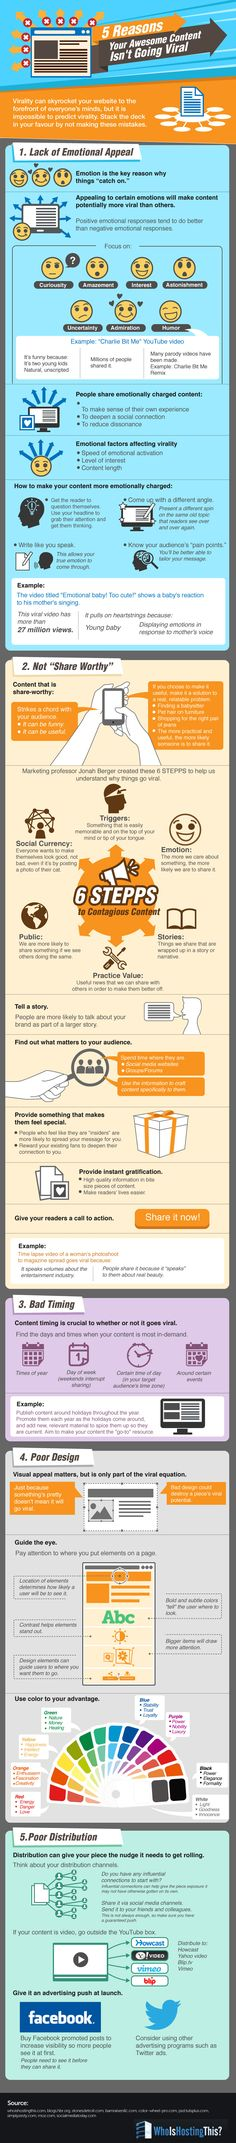 The Science Behind Going #Viral - #infographic #socialmedia Many thanks to Irfan Ahmed